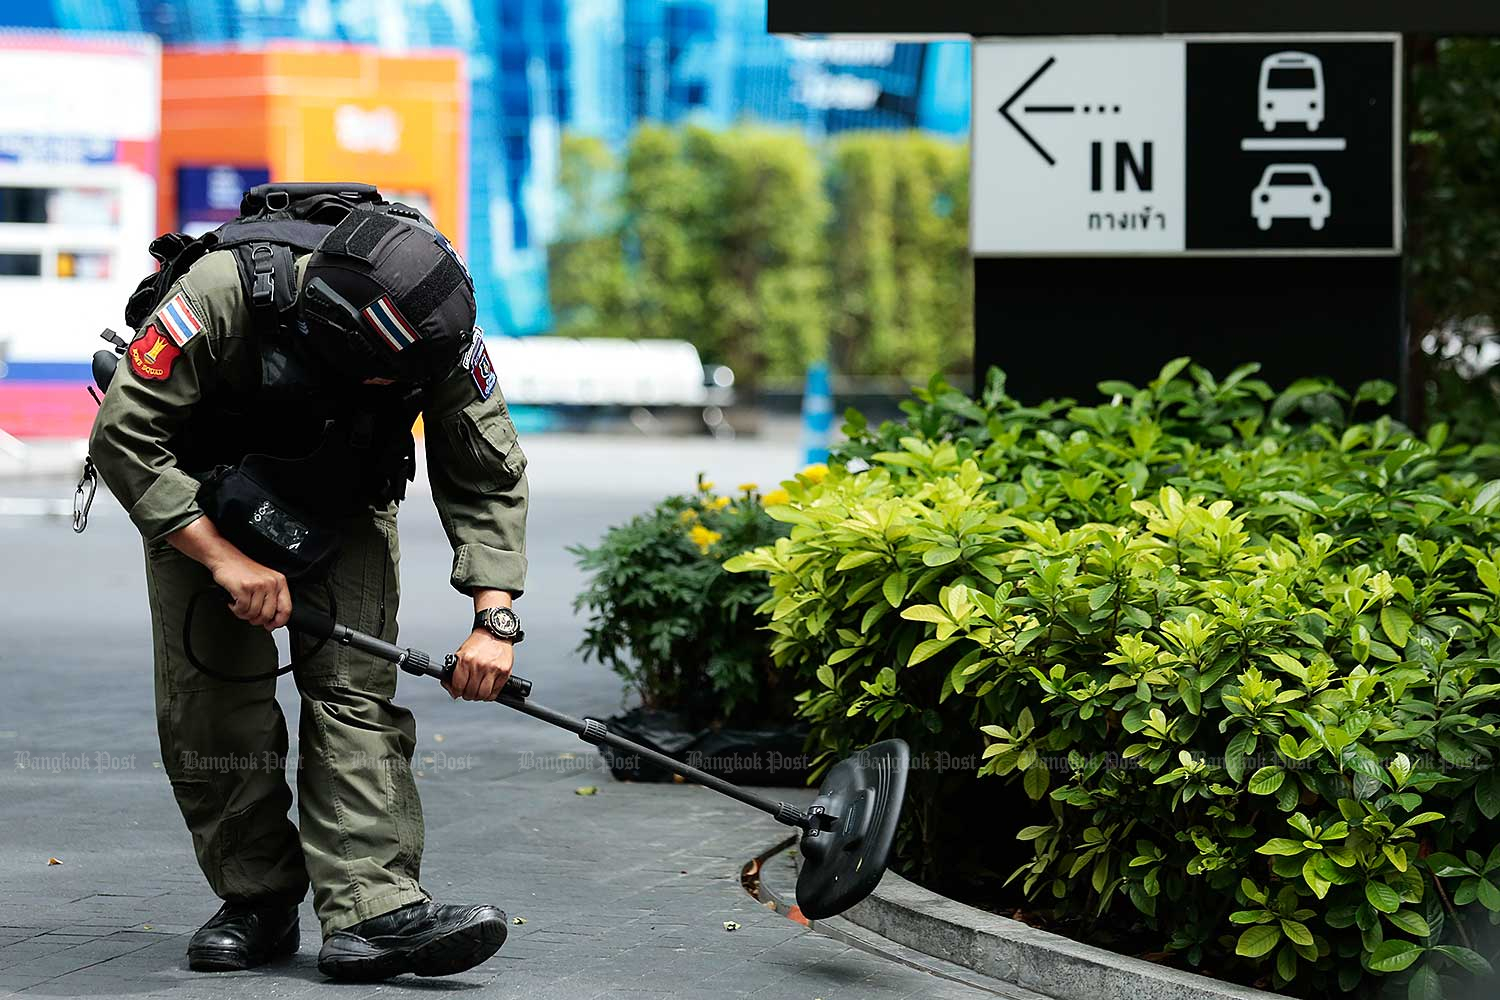 Police have dismissed that the bombings in Bangkok were in revenge for the death of a deep South suspected insurgent. (Bangkok Post file photo)